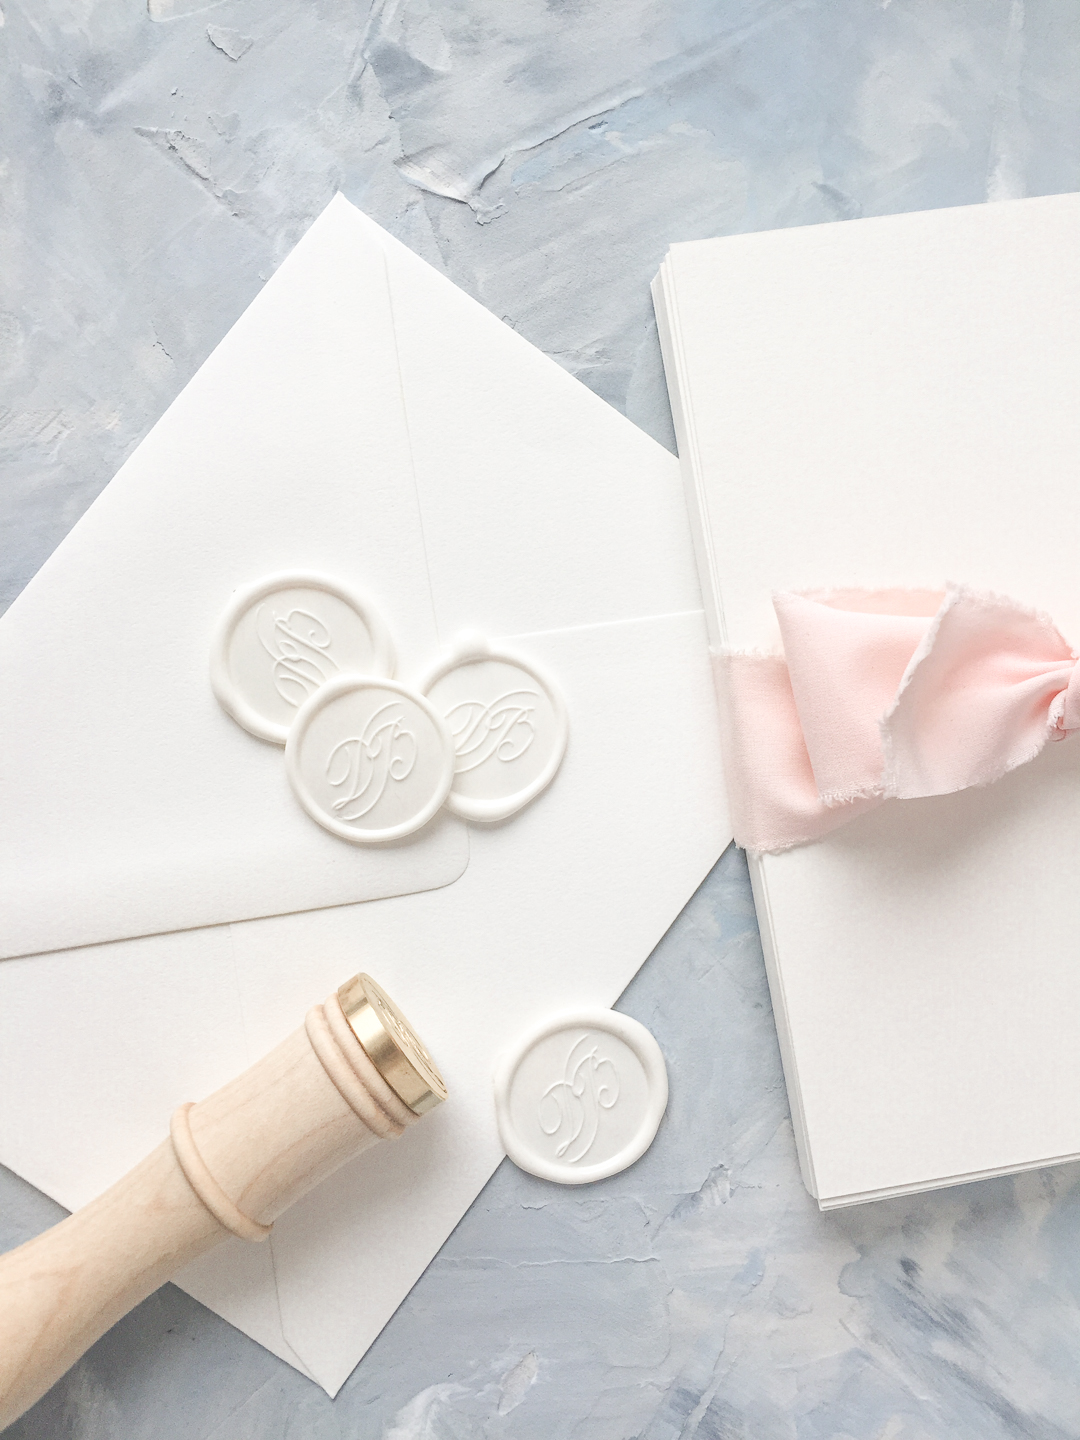 Monogram wax seals can be added to any order in the wedding collection. The wedding collection is made up of a traditional layout and artful elements to tailor your wedding invitation to your style. Available in digital printing, letterpress, and foil stamping. Custom wedding invitations by Little Fox Paperie.